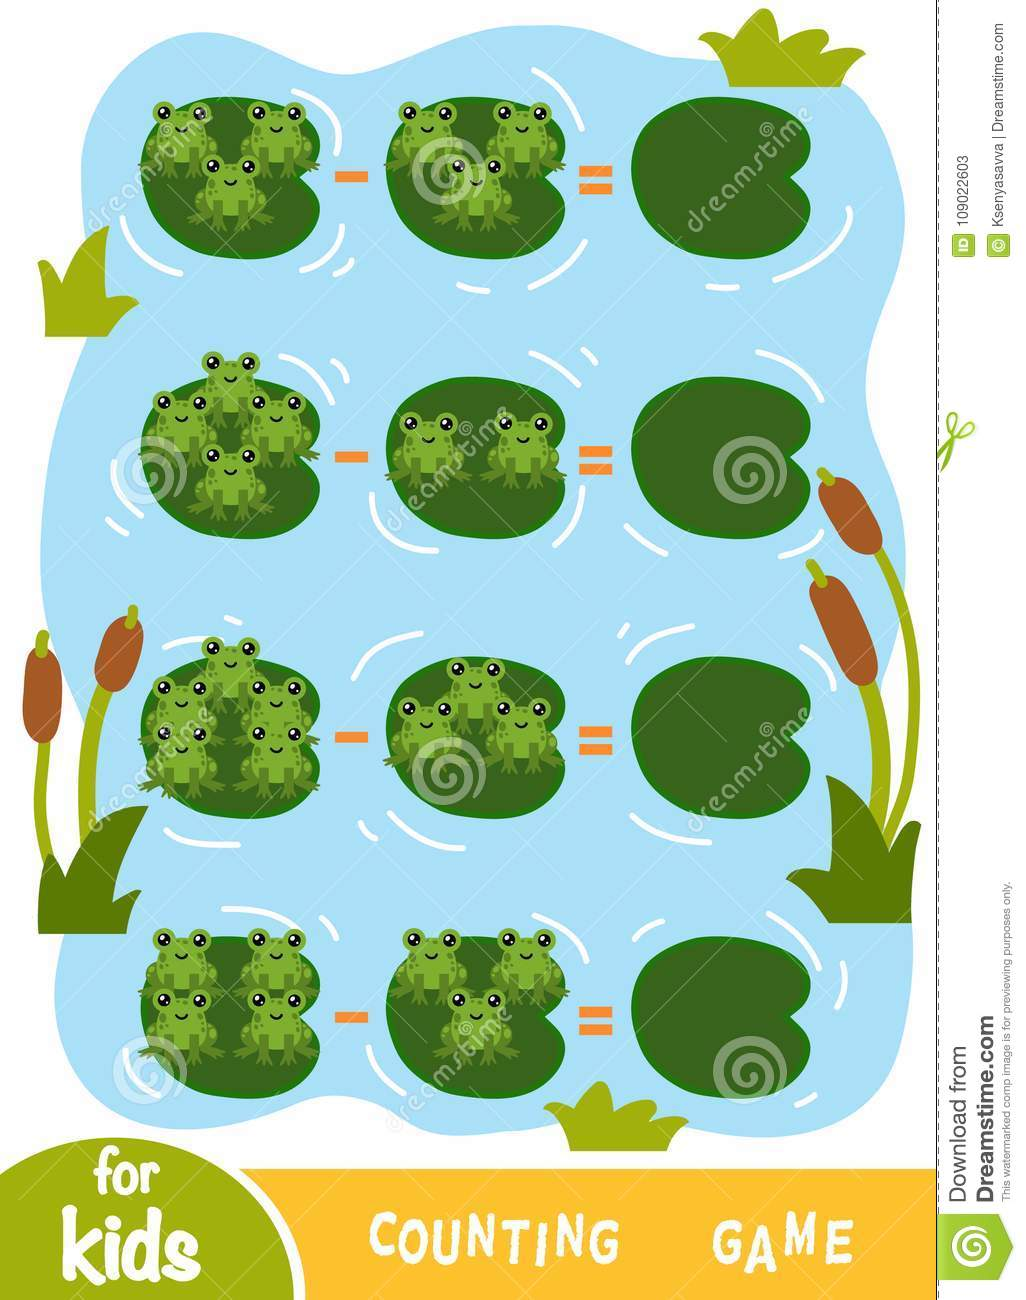 Counting Game For Children. Count The Numbers Of Frogs Stock Vector ...